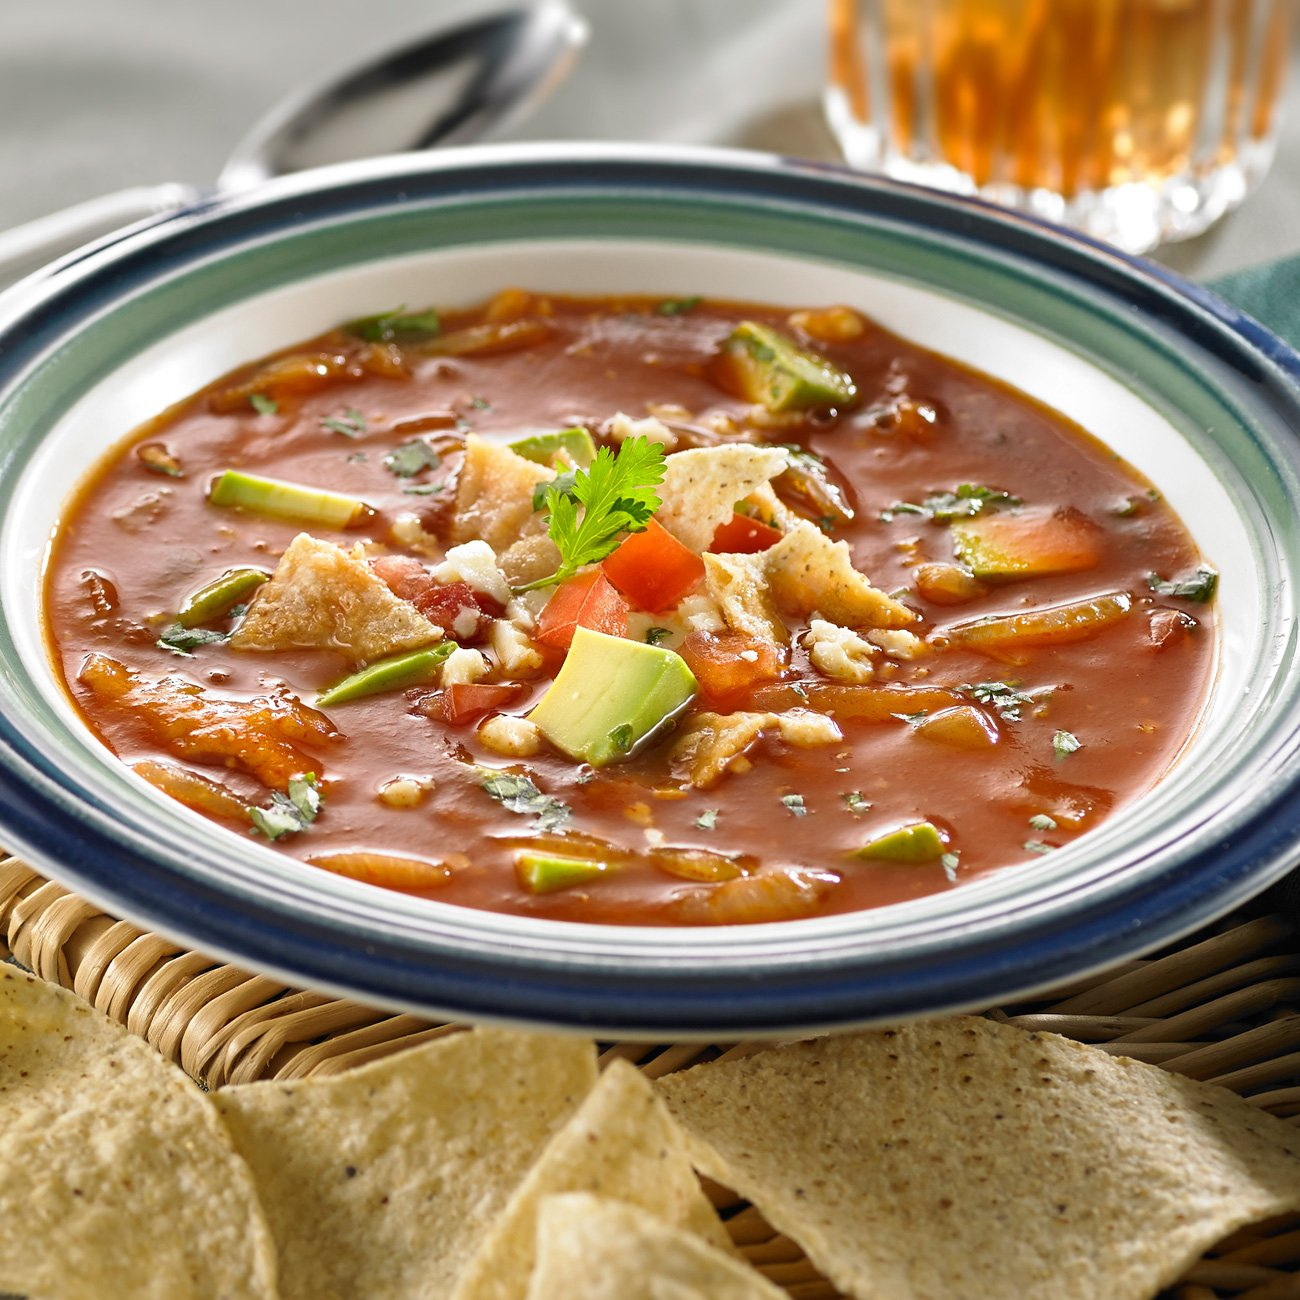 Spicy Mexican Tomato Soup